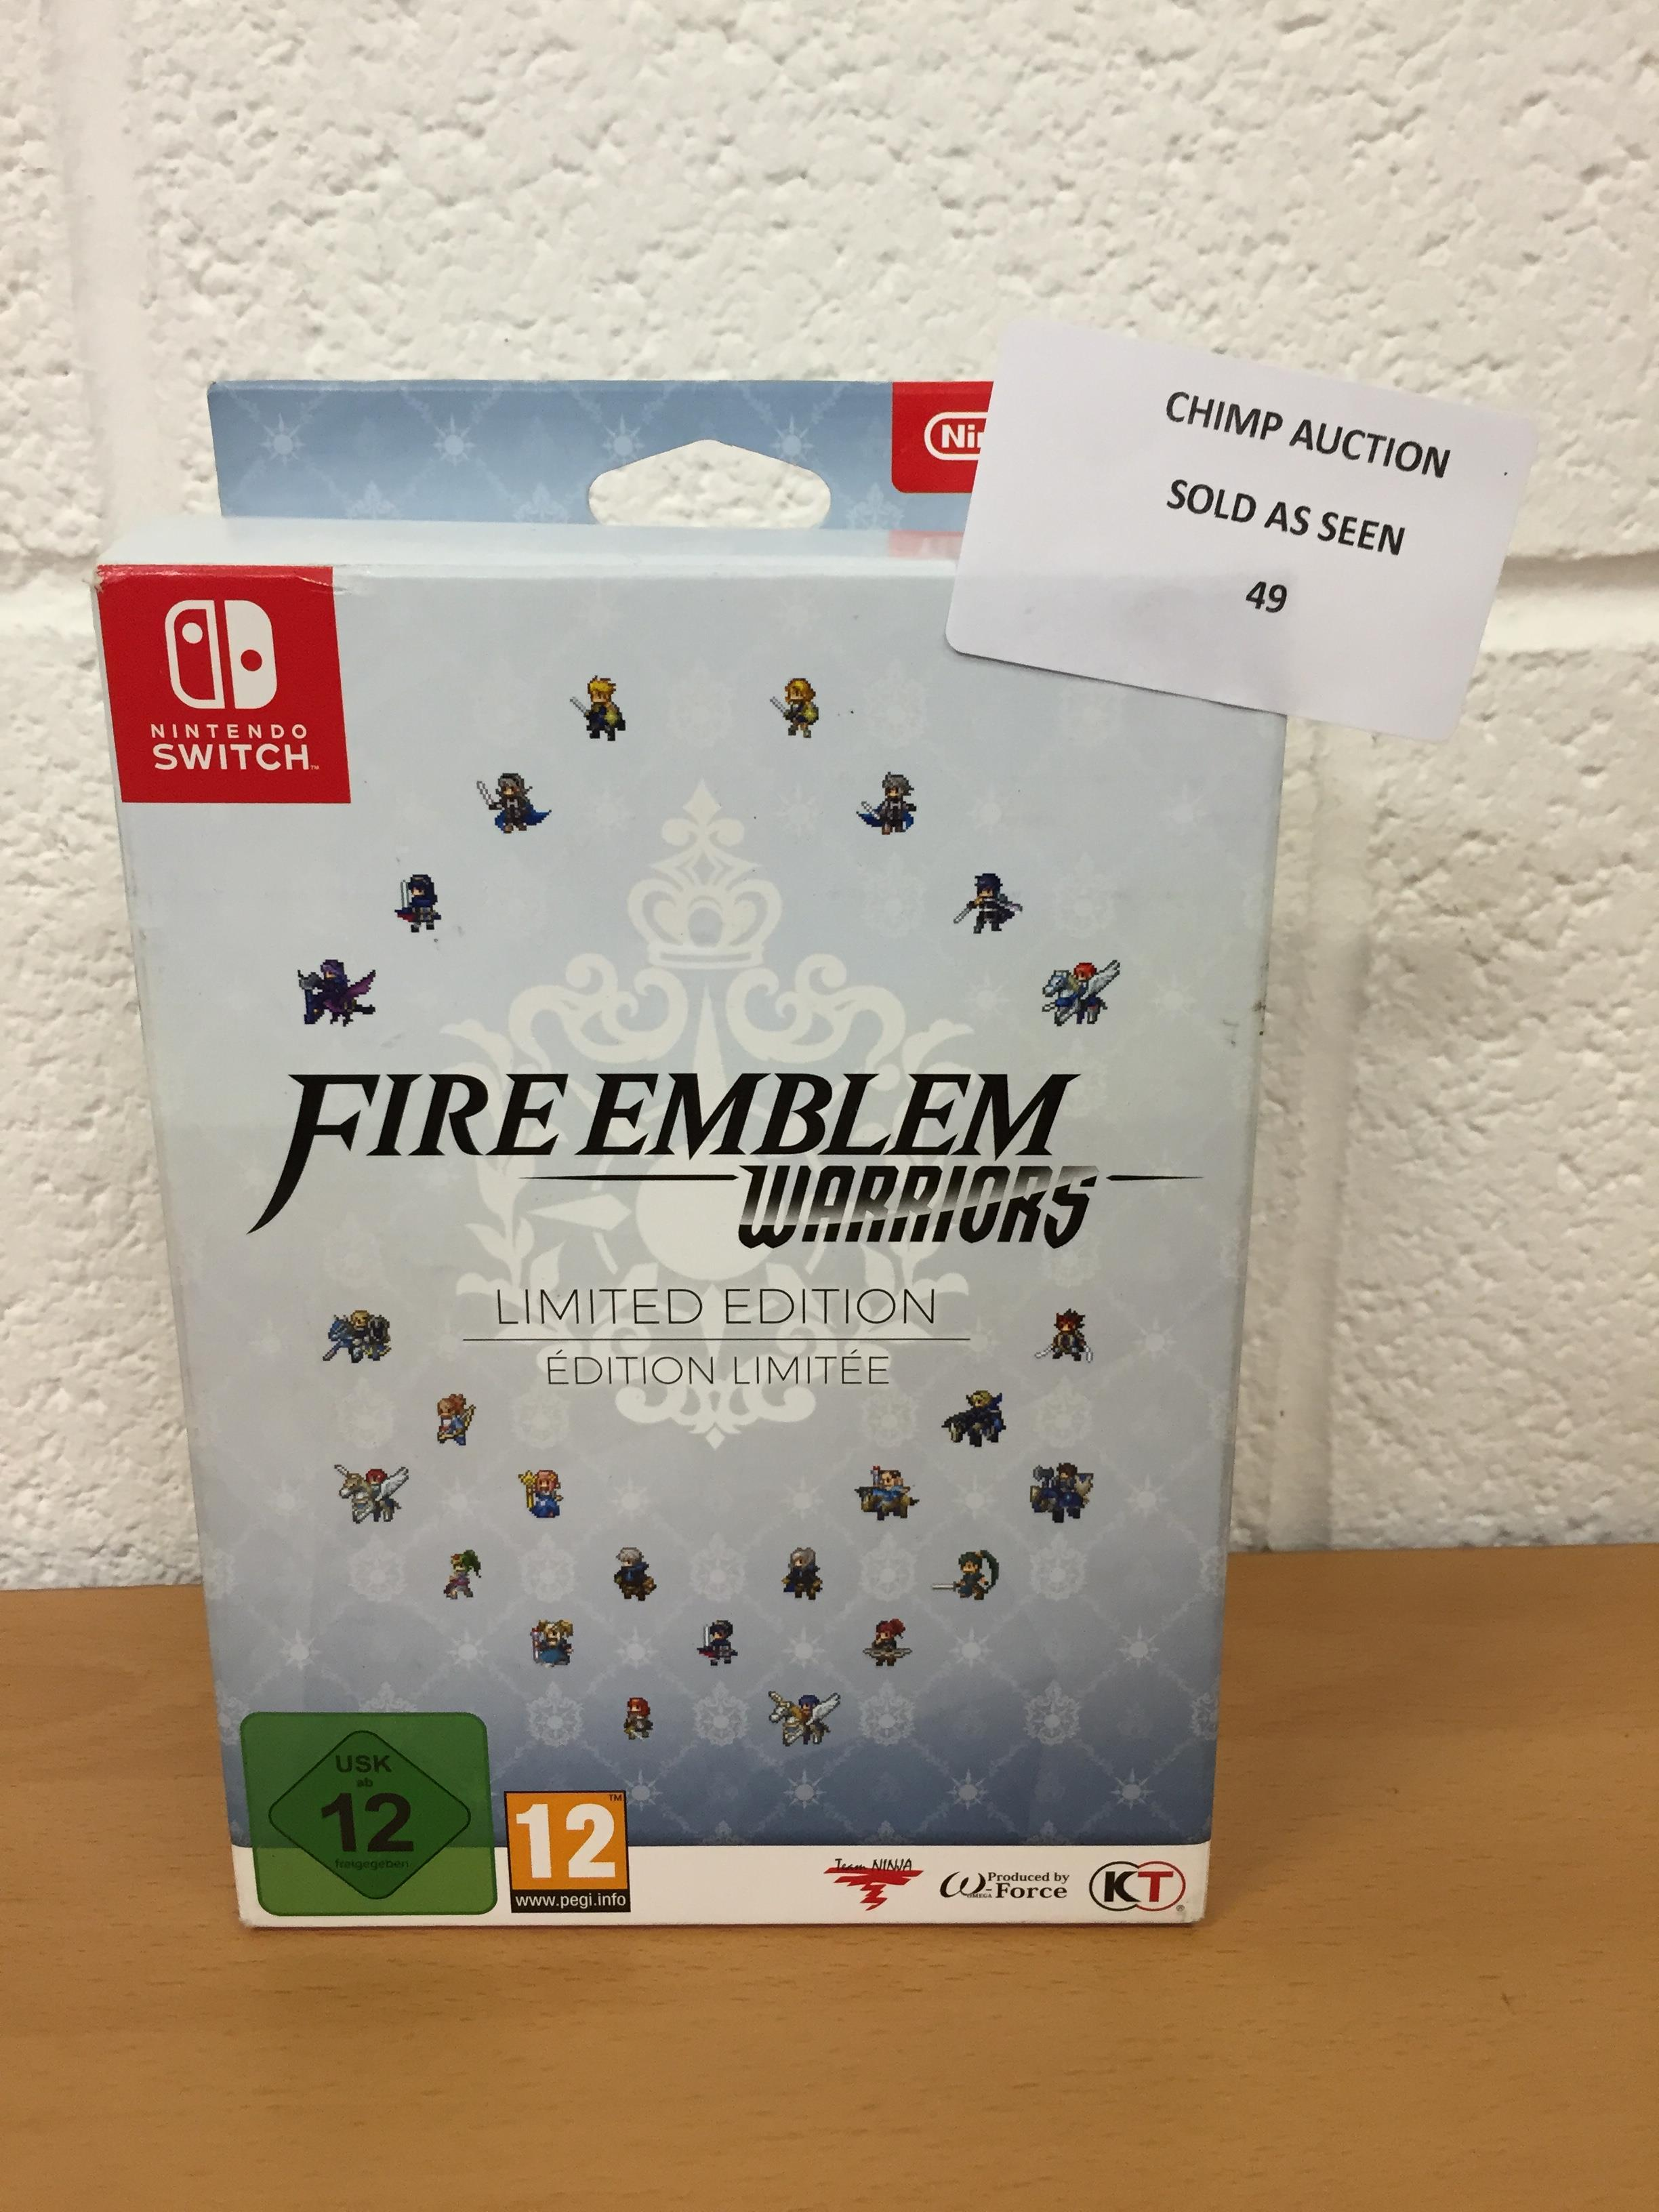 Lot 49 - Fire Emblem Warriors Limited Edition (Nintendo Switch) RRP £79.99